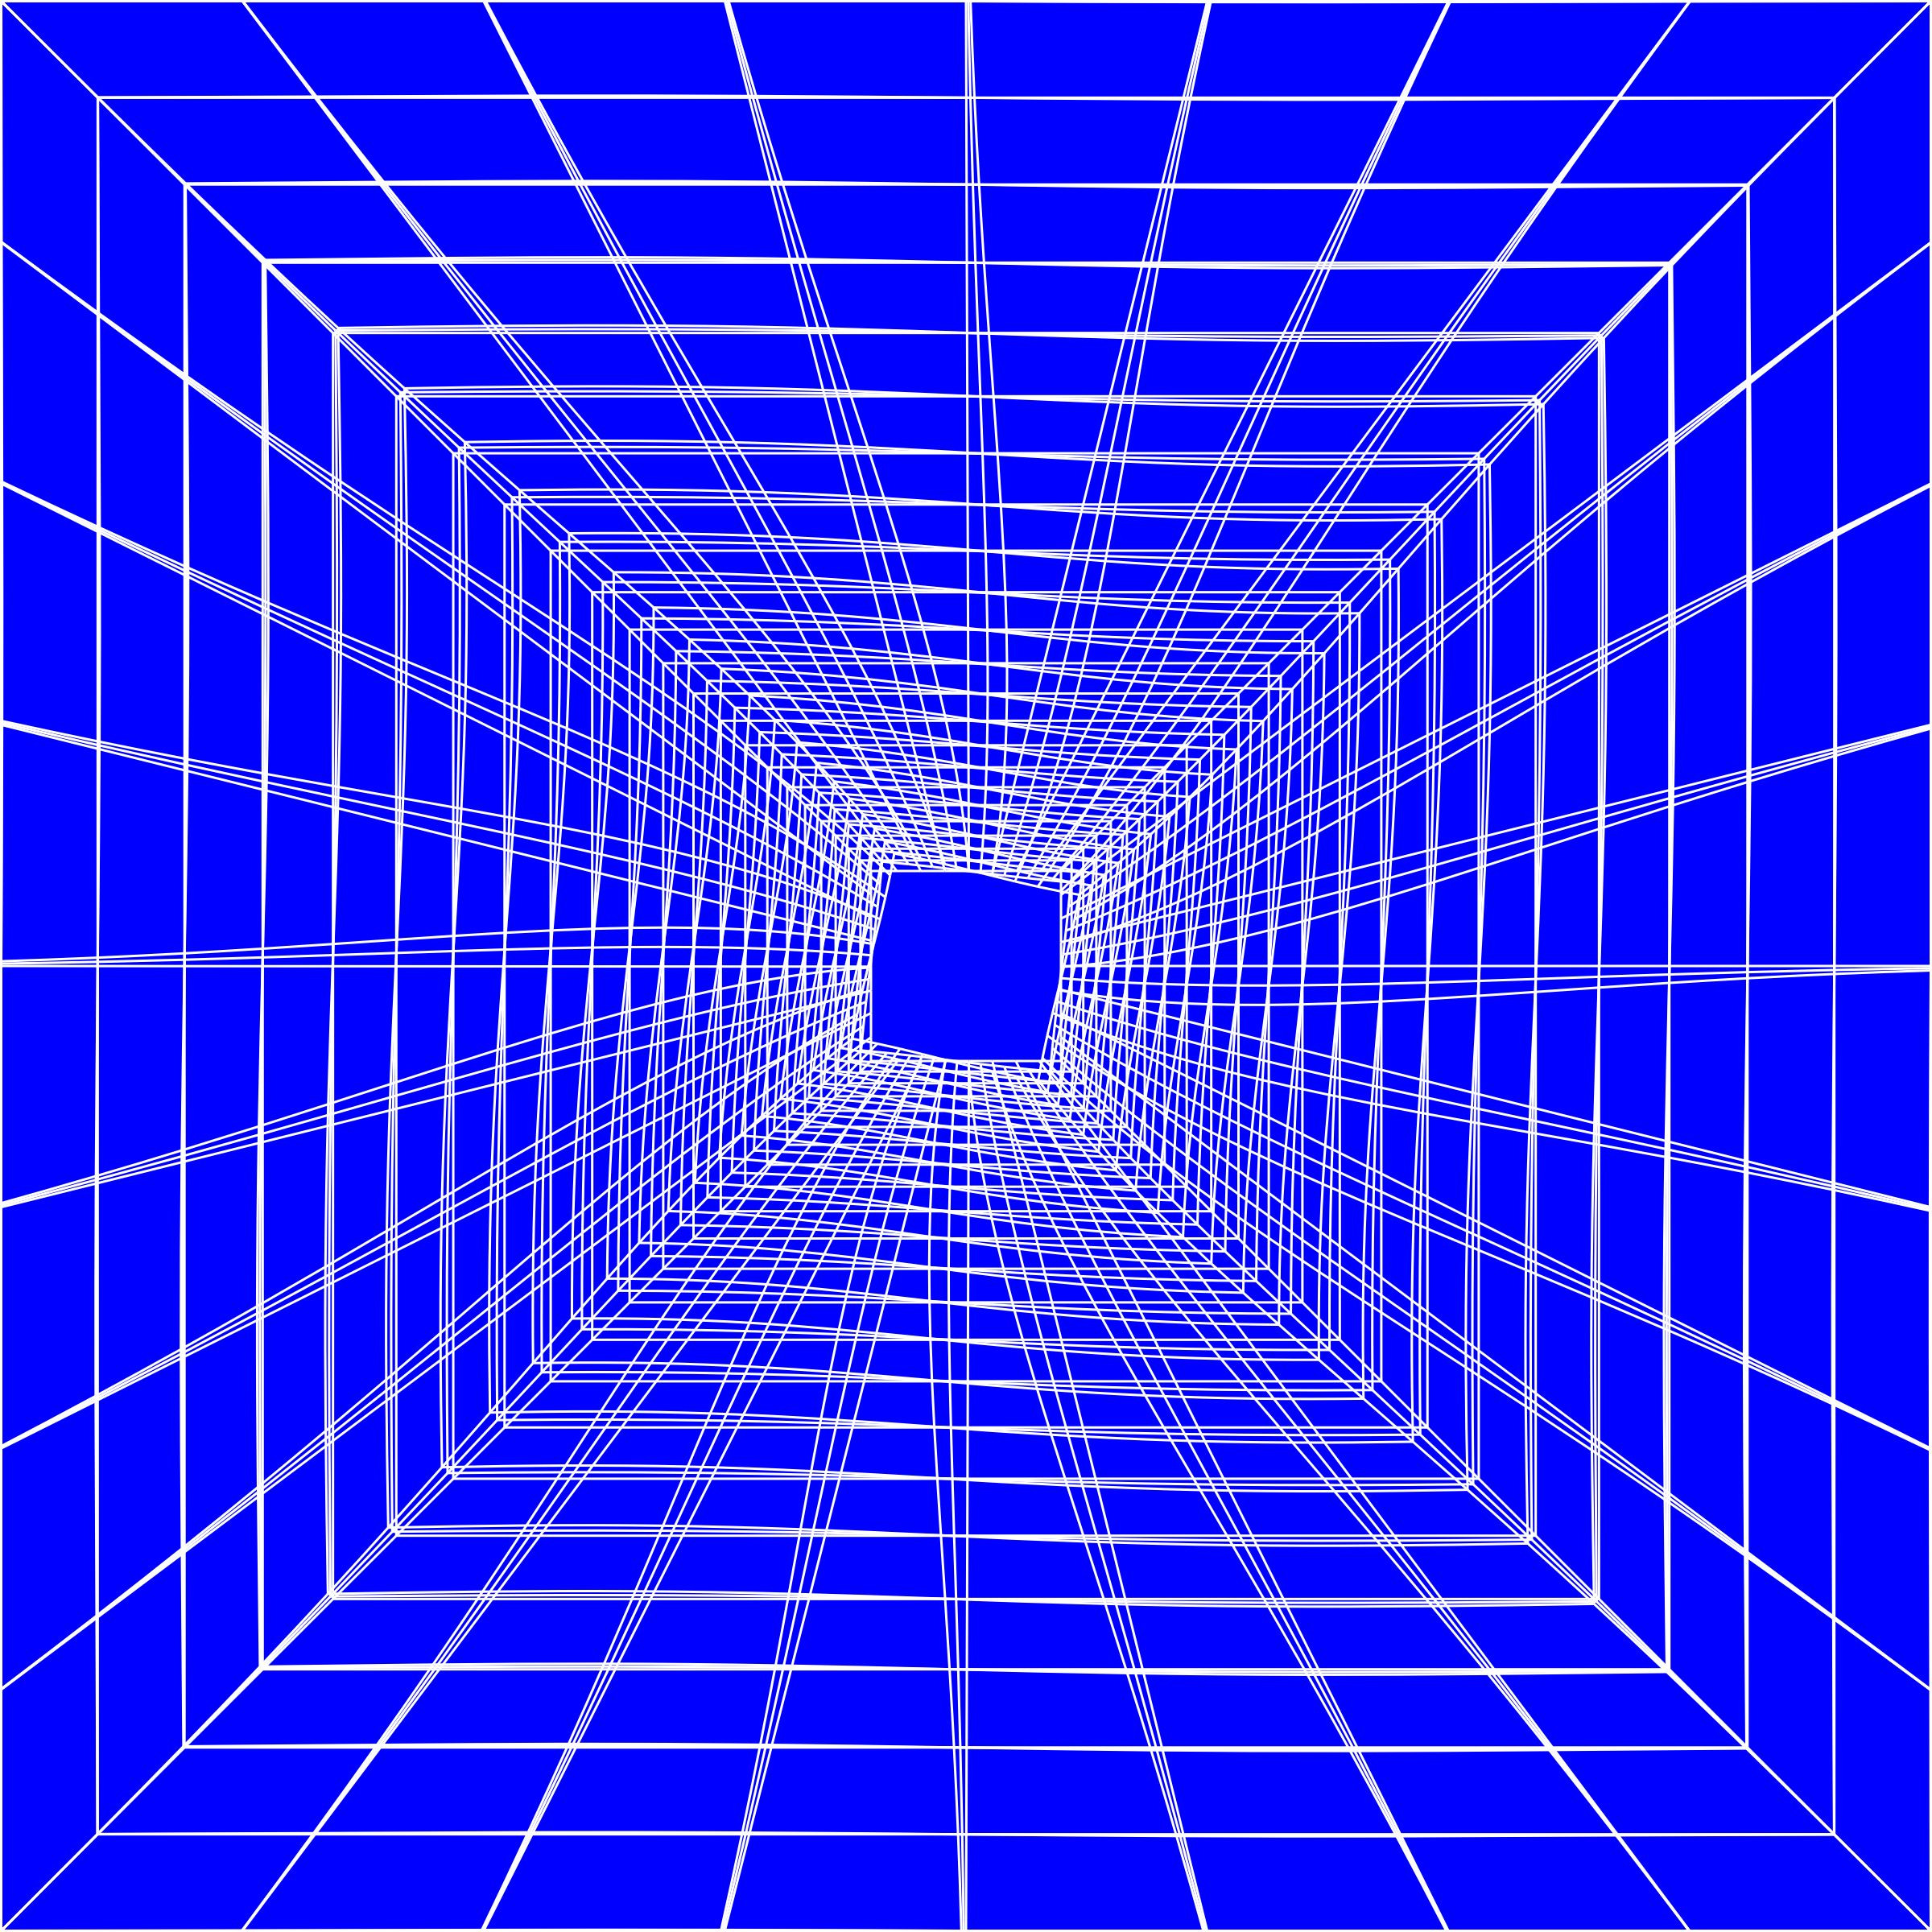 Blue Perspective Grid Distorted 9 by GDJ